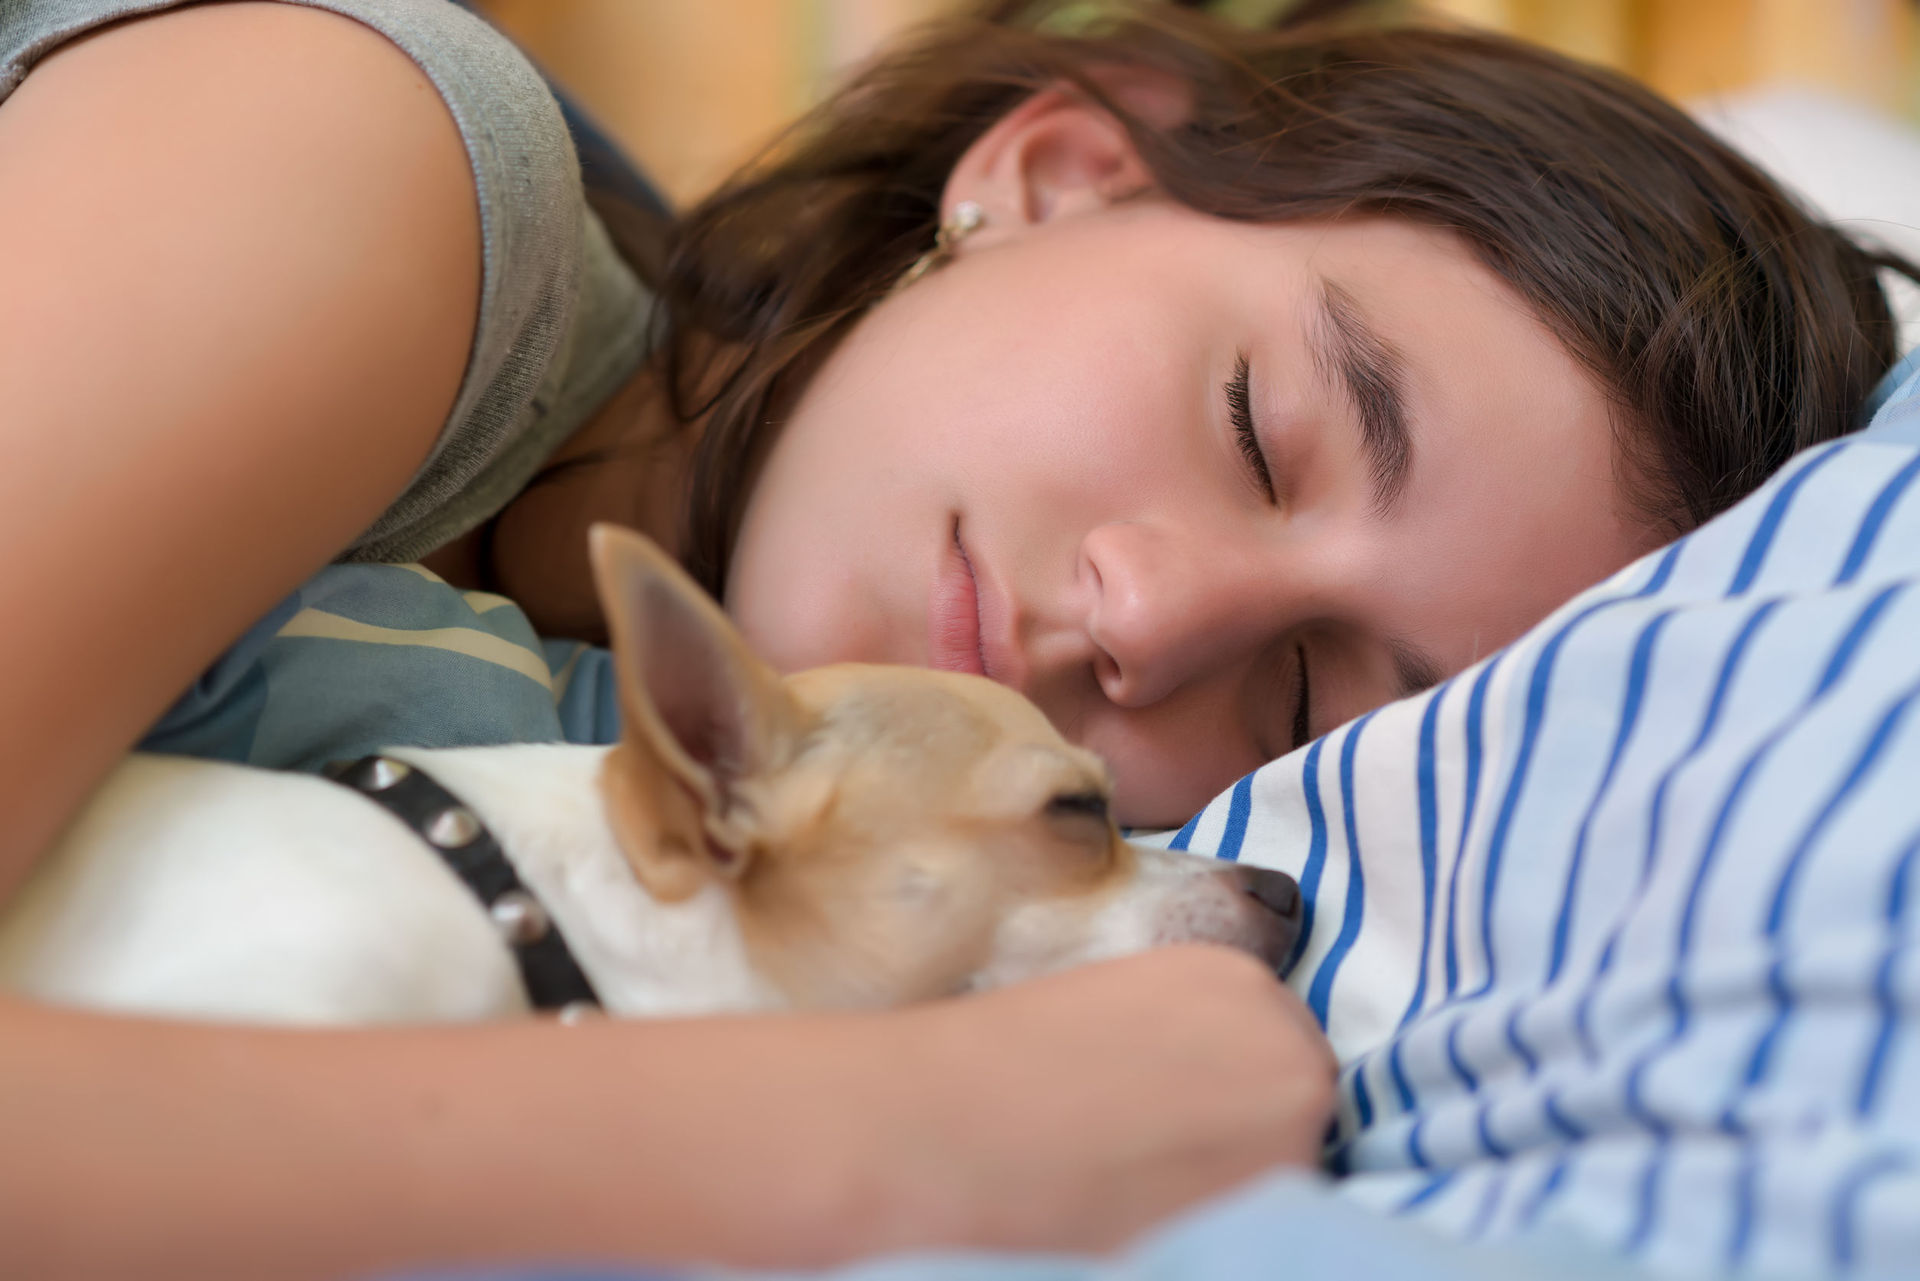 The surprising benefits of sleeping next to your dog